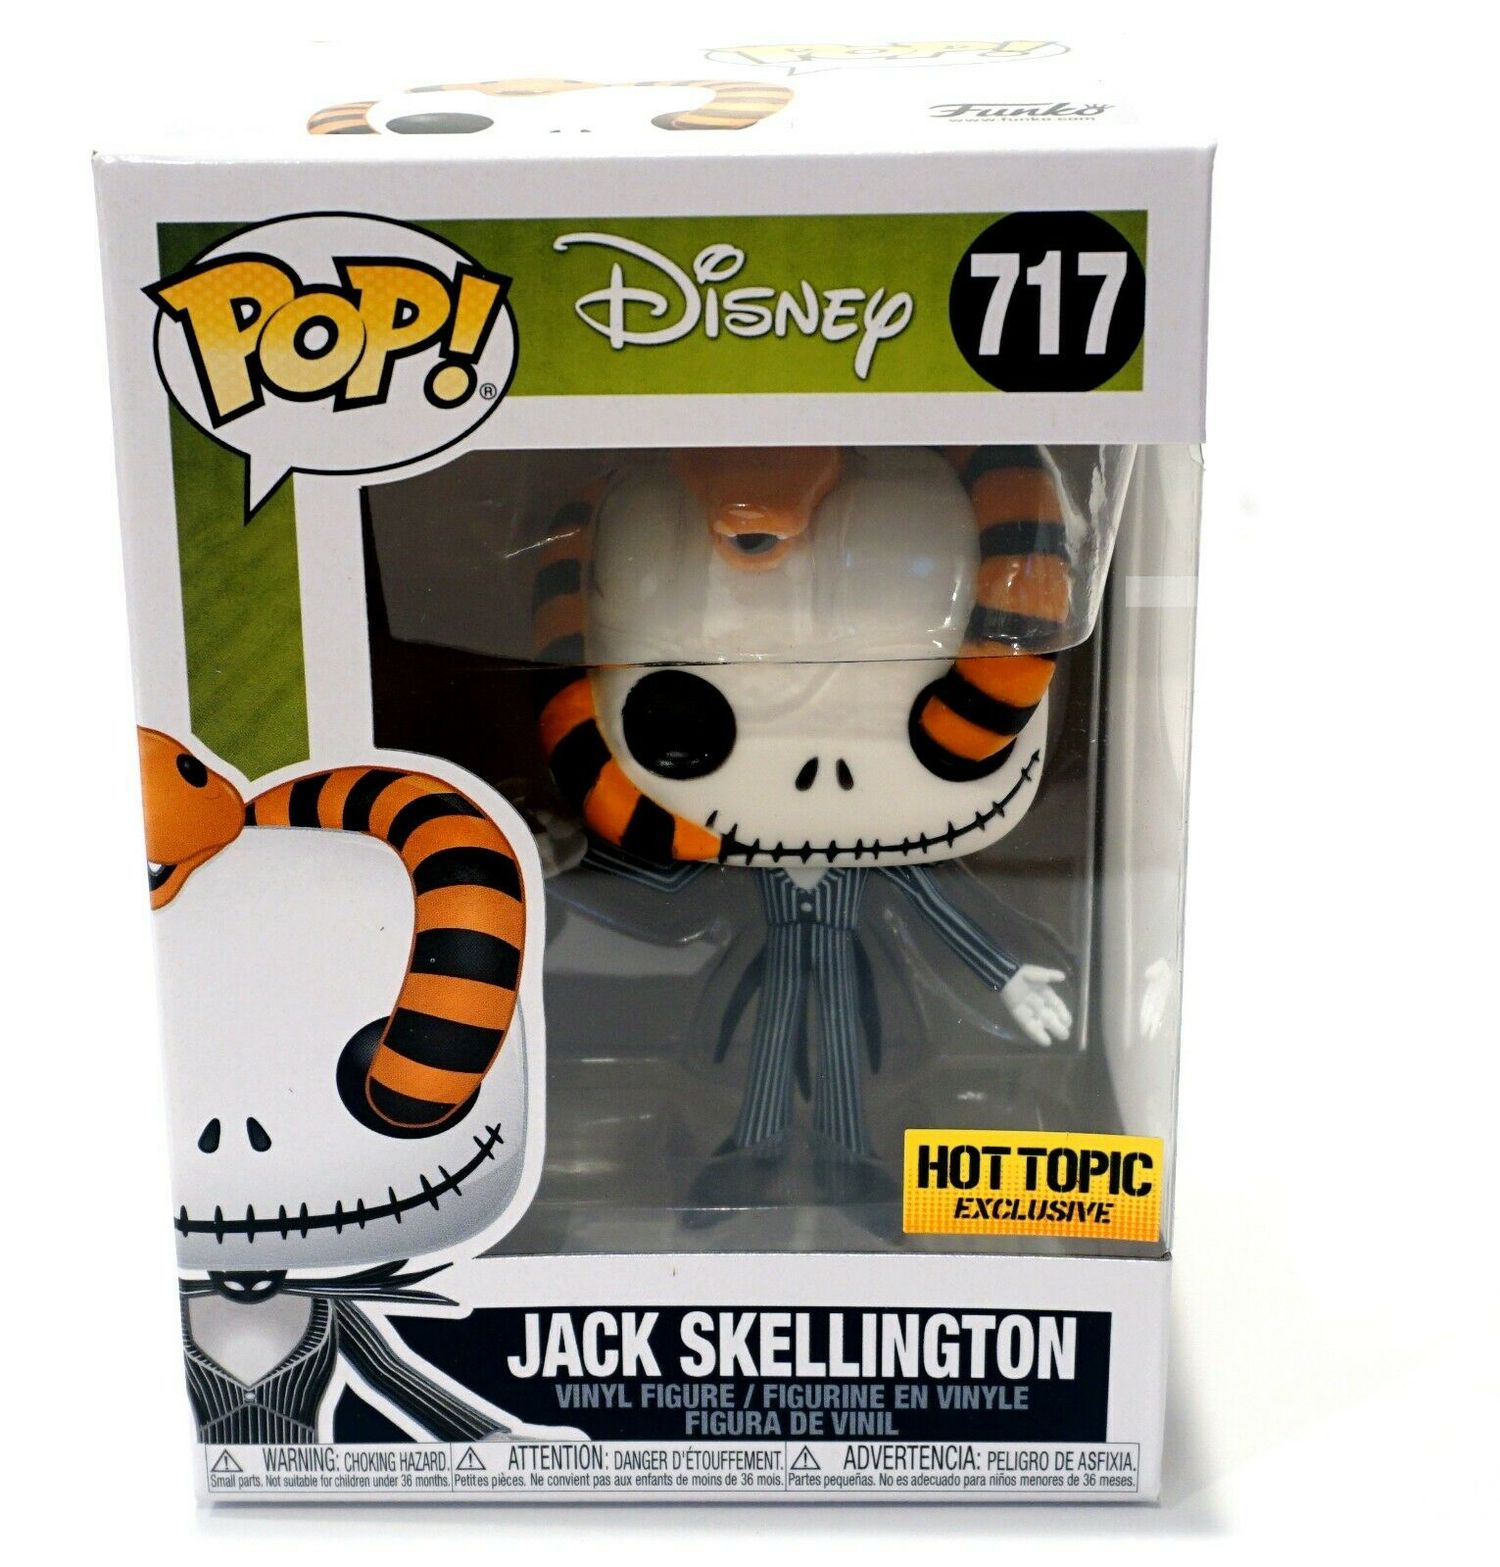 Jack Skellington Snake - Disney - Funko Pop! #717